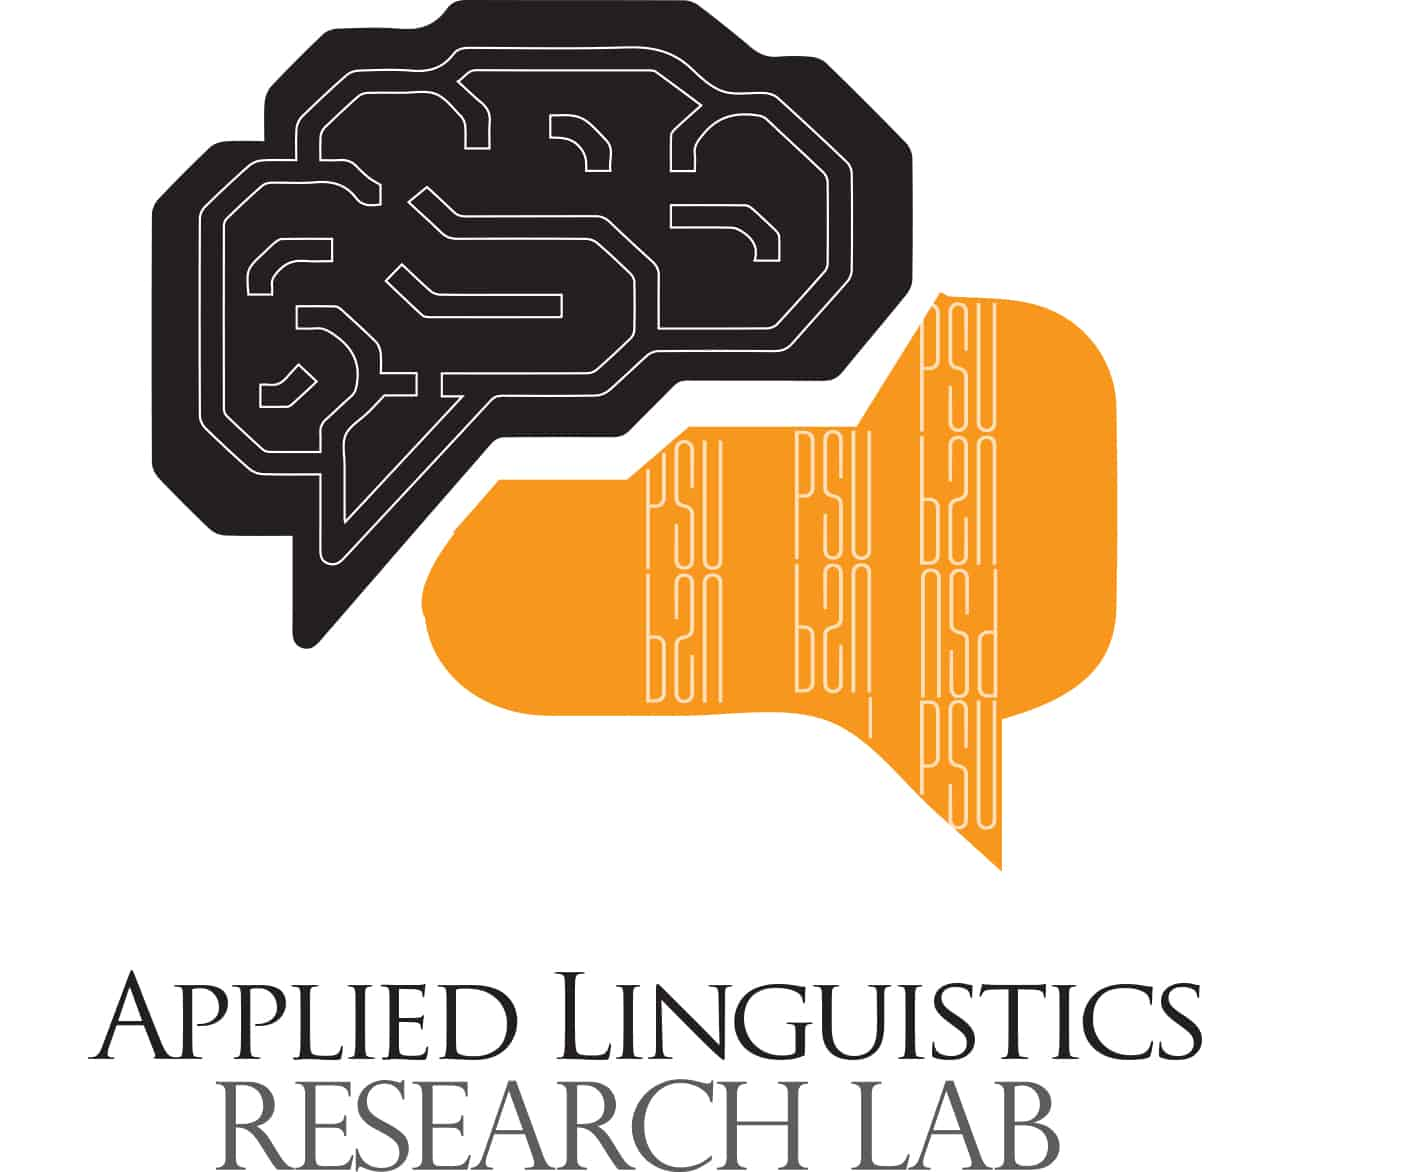 The Applied Linguistics Research Lab Holds a Seminar in Collaboration with the Regional English Language Office at the US Embassy